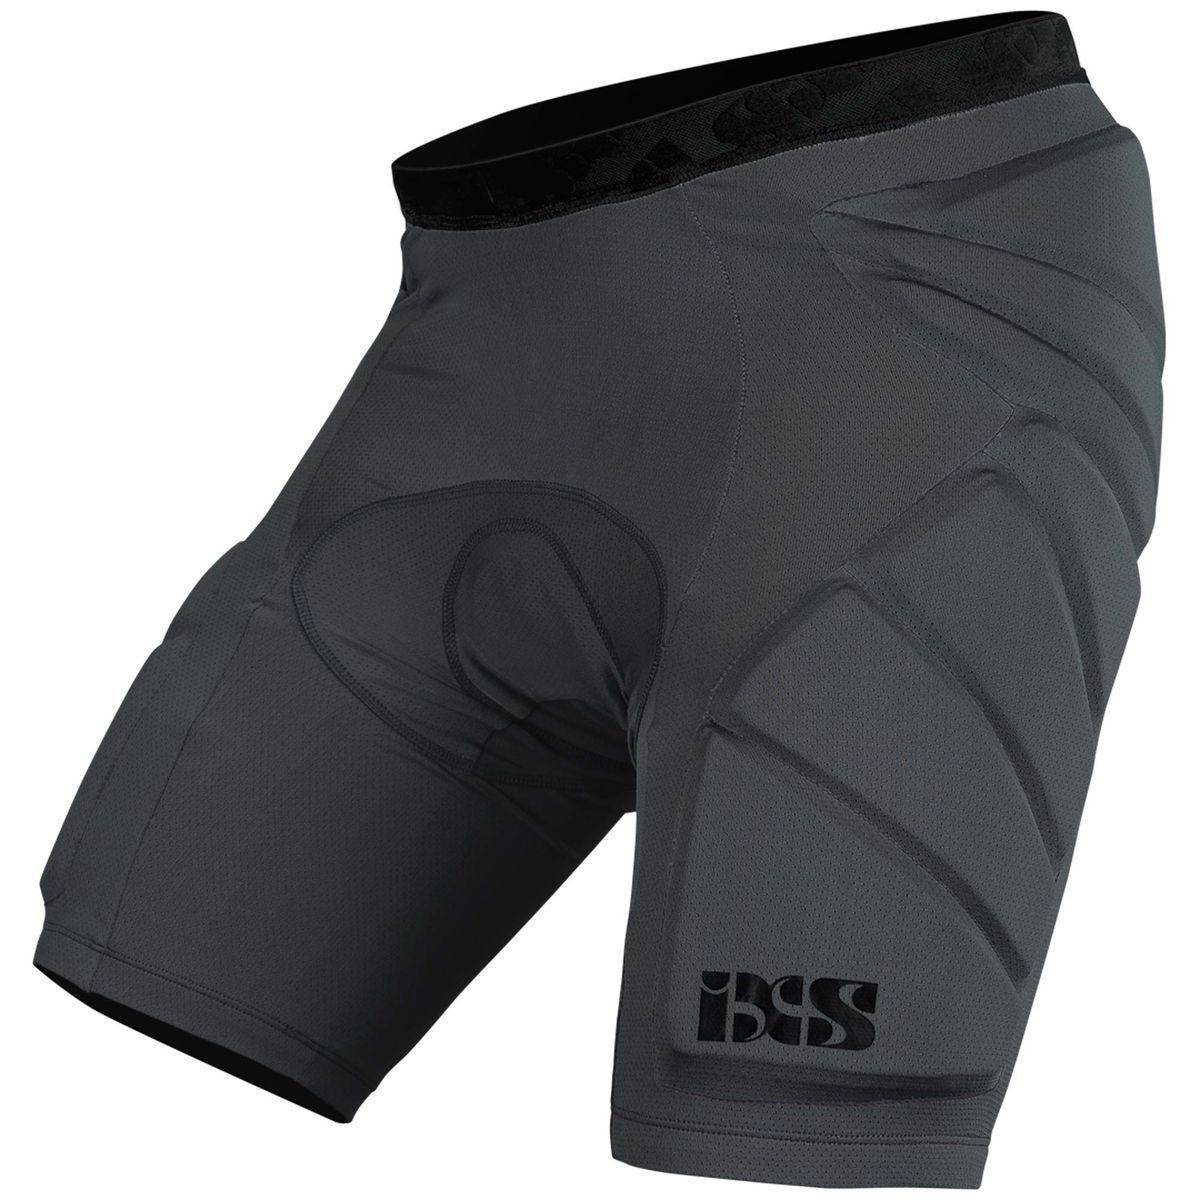 HACK LOWER BODY PROTECTIVE Shorts